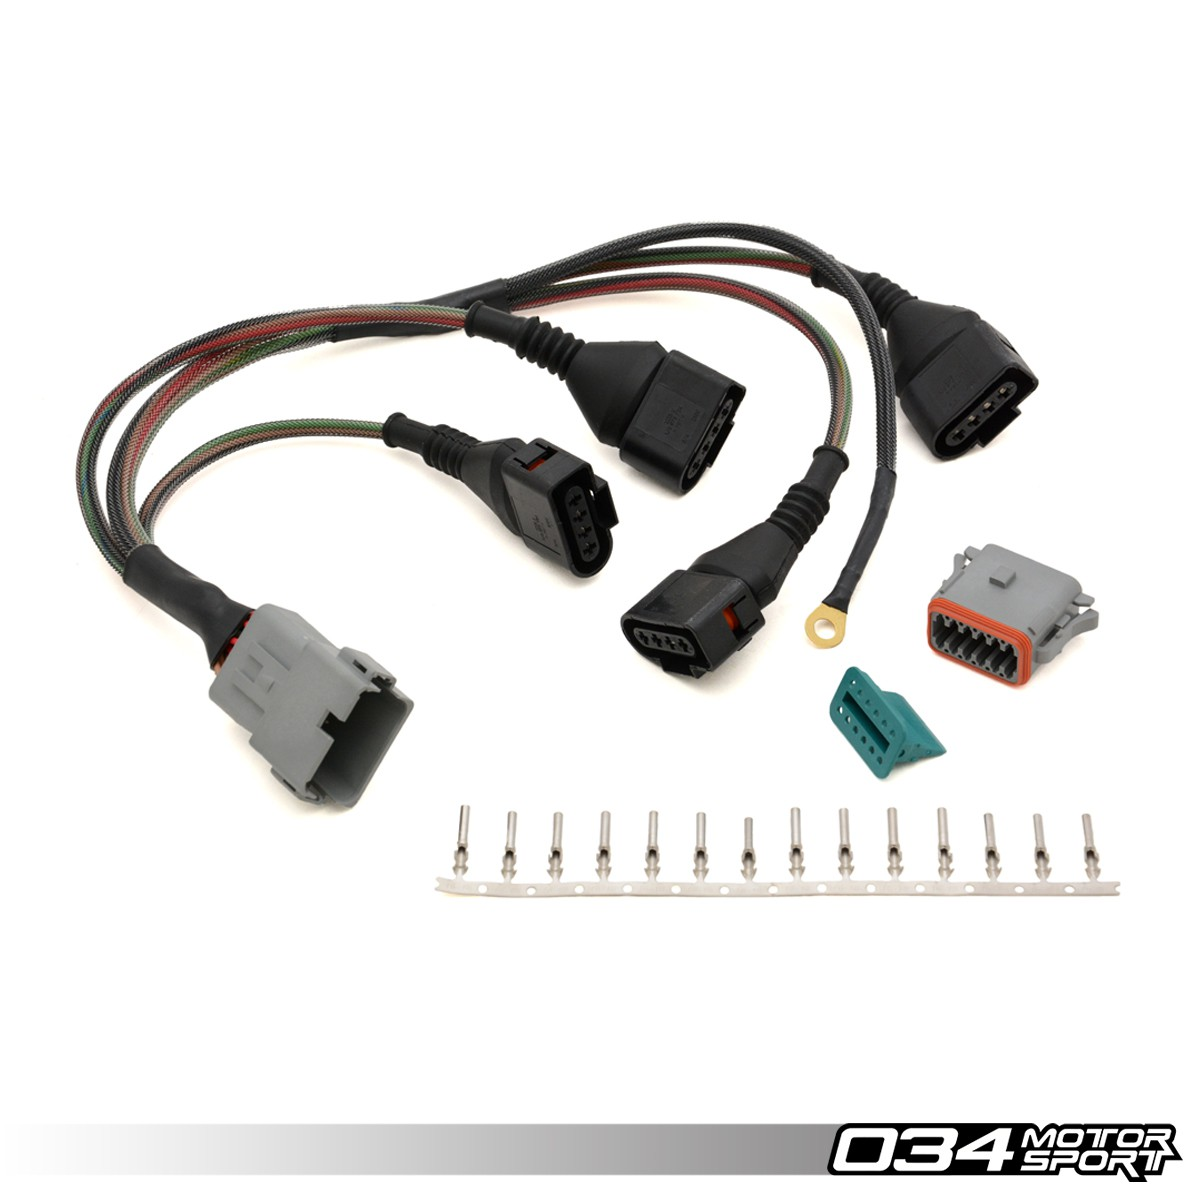 repair update harness audi volkswagen 18t with 4 wire coils 034motorsport 034 701 0004 2 repair update harness, audi volkswagen 1 8t with 4 wire coils  at reclaimingppi.co